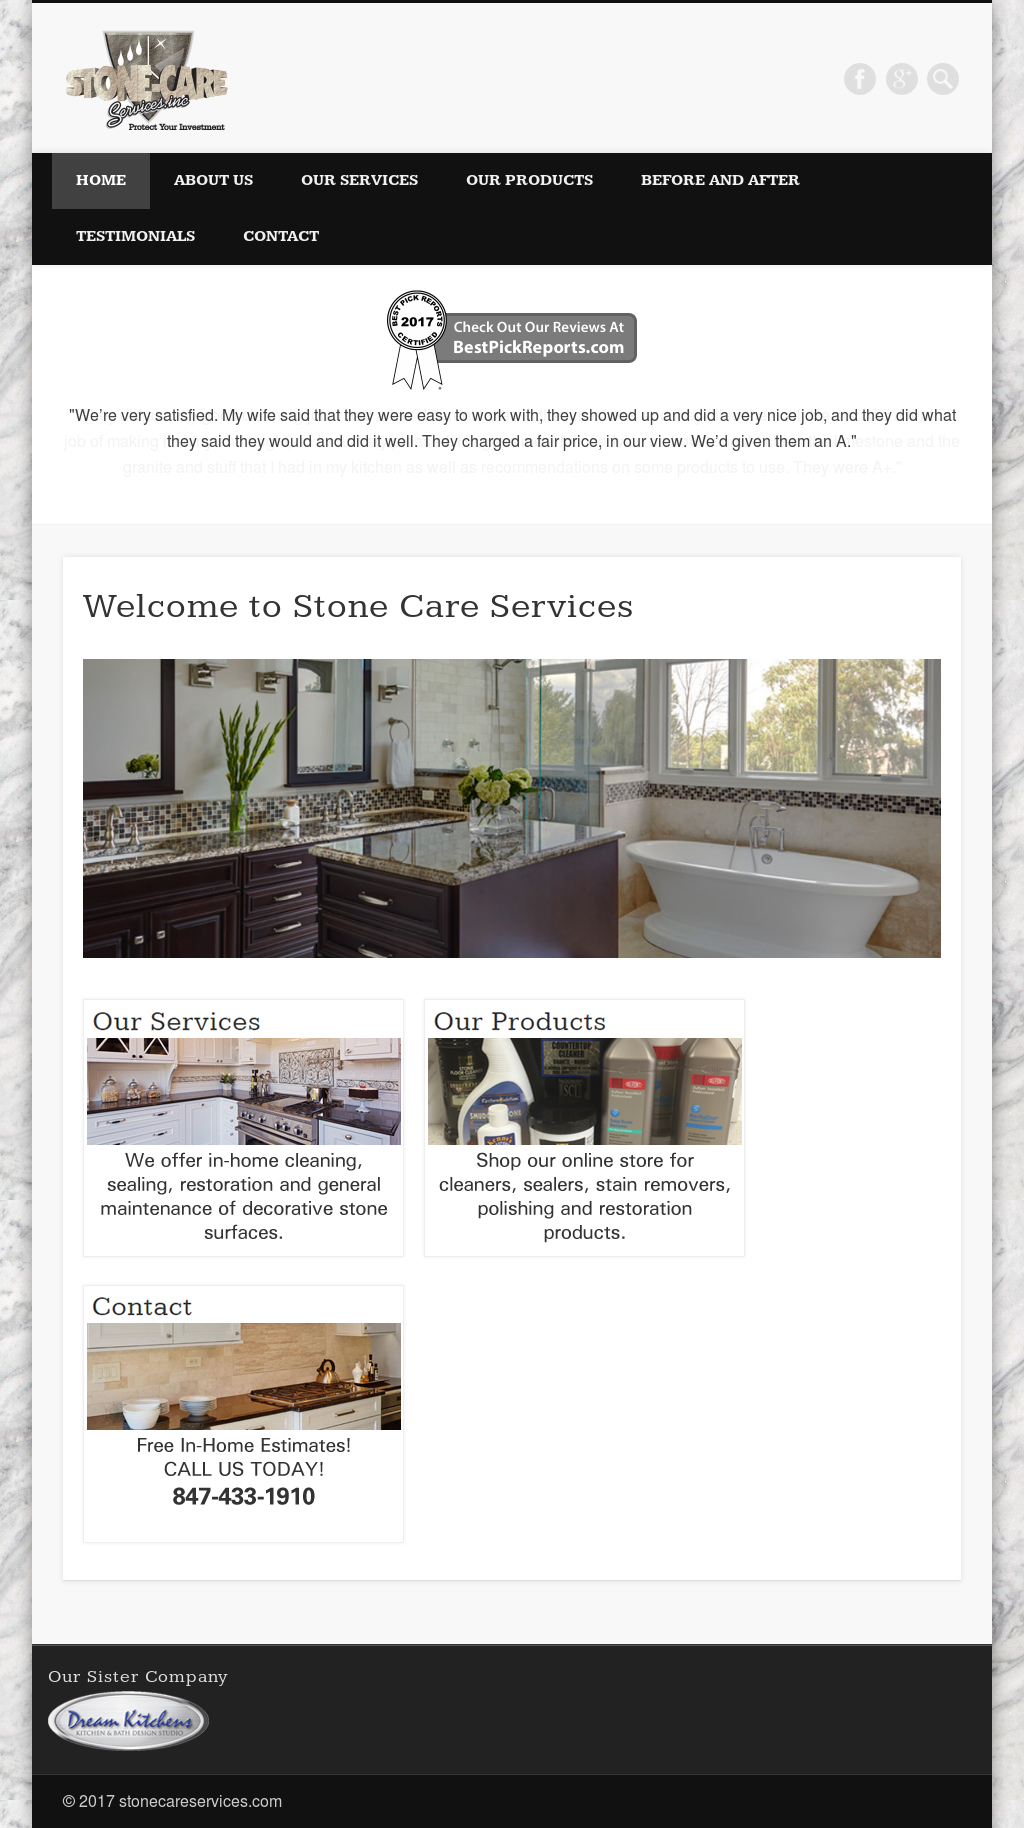 Stone-Care Services Competitors, Revenue and Employees - Owler